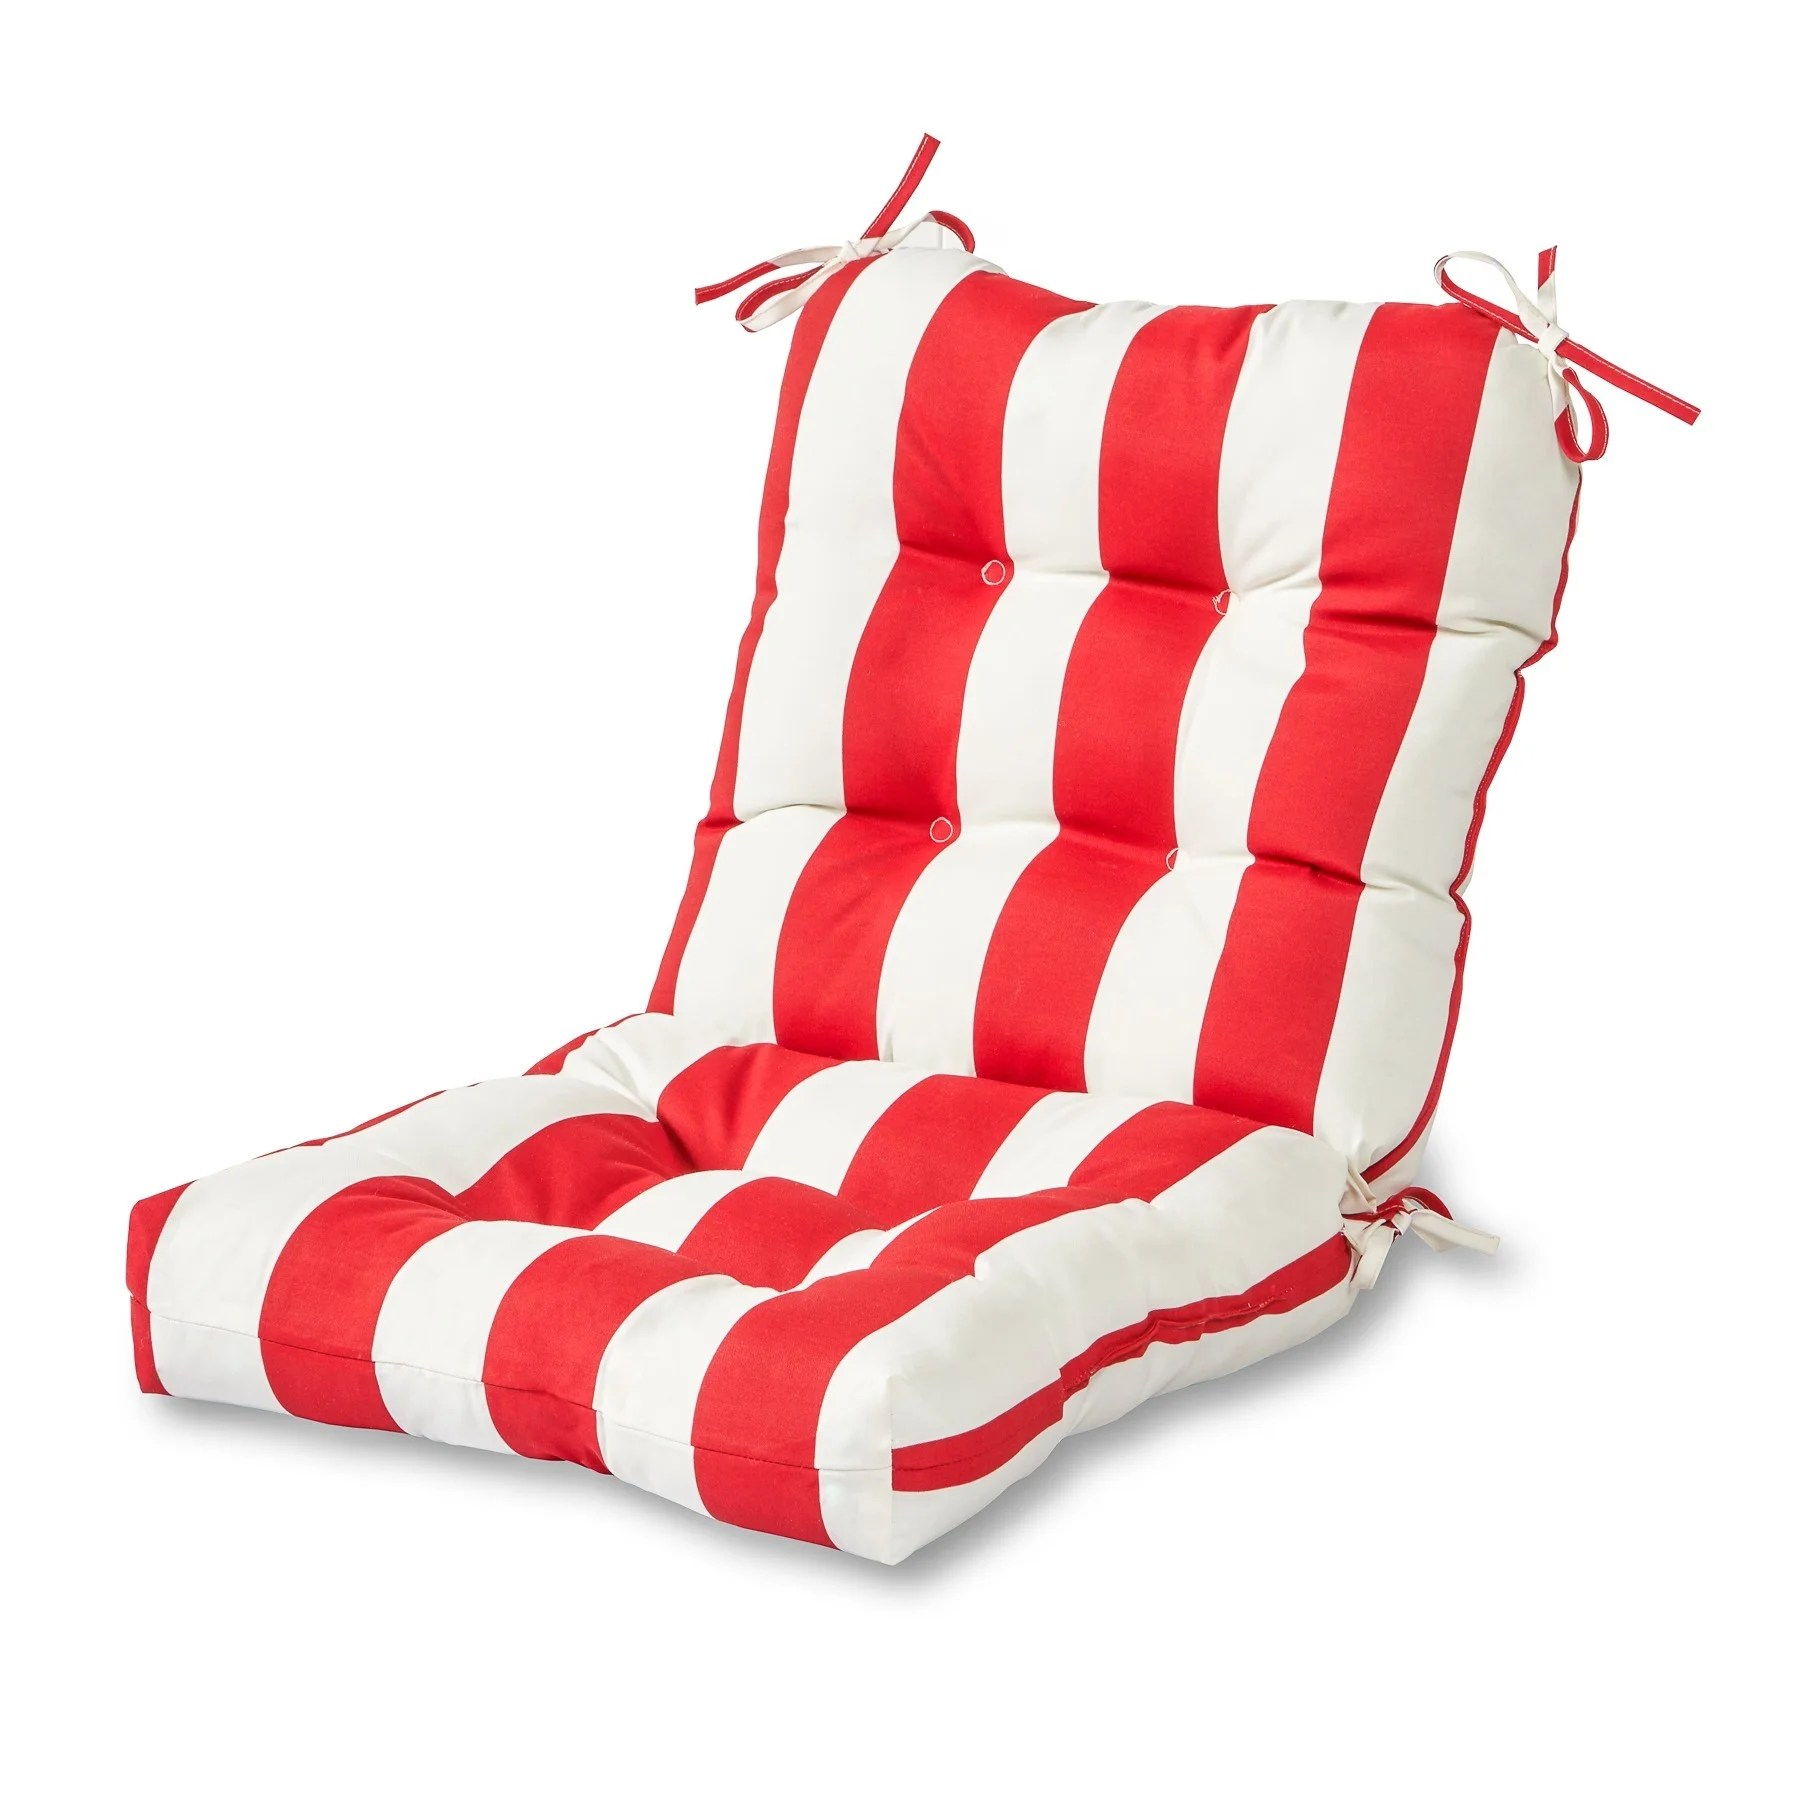 brentwood originals chair pads webbing for lawn chairs outdoor cabana stripe cushion ebay